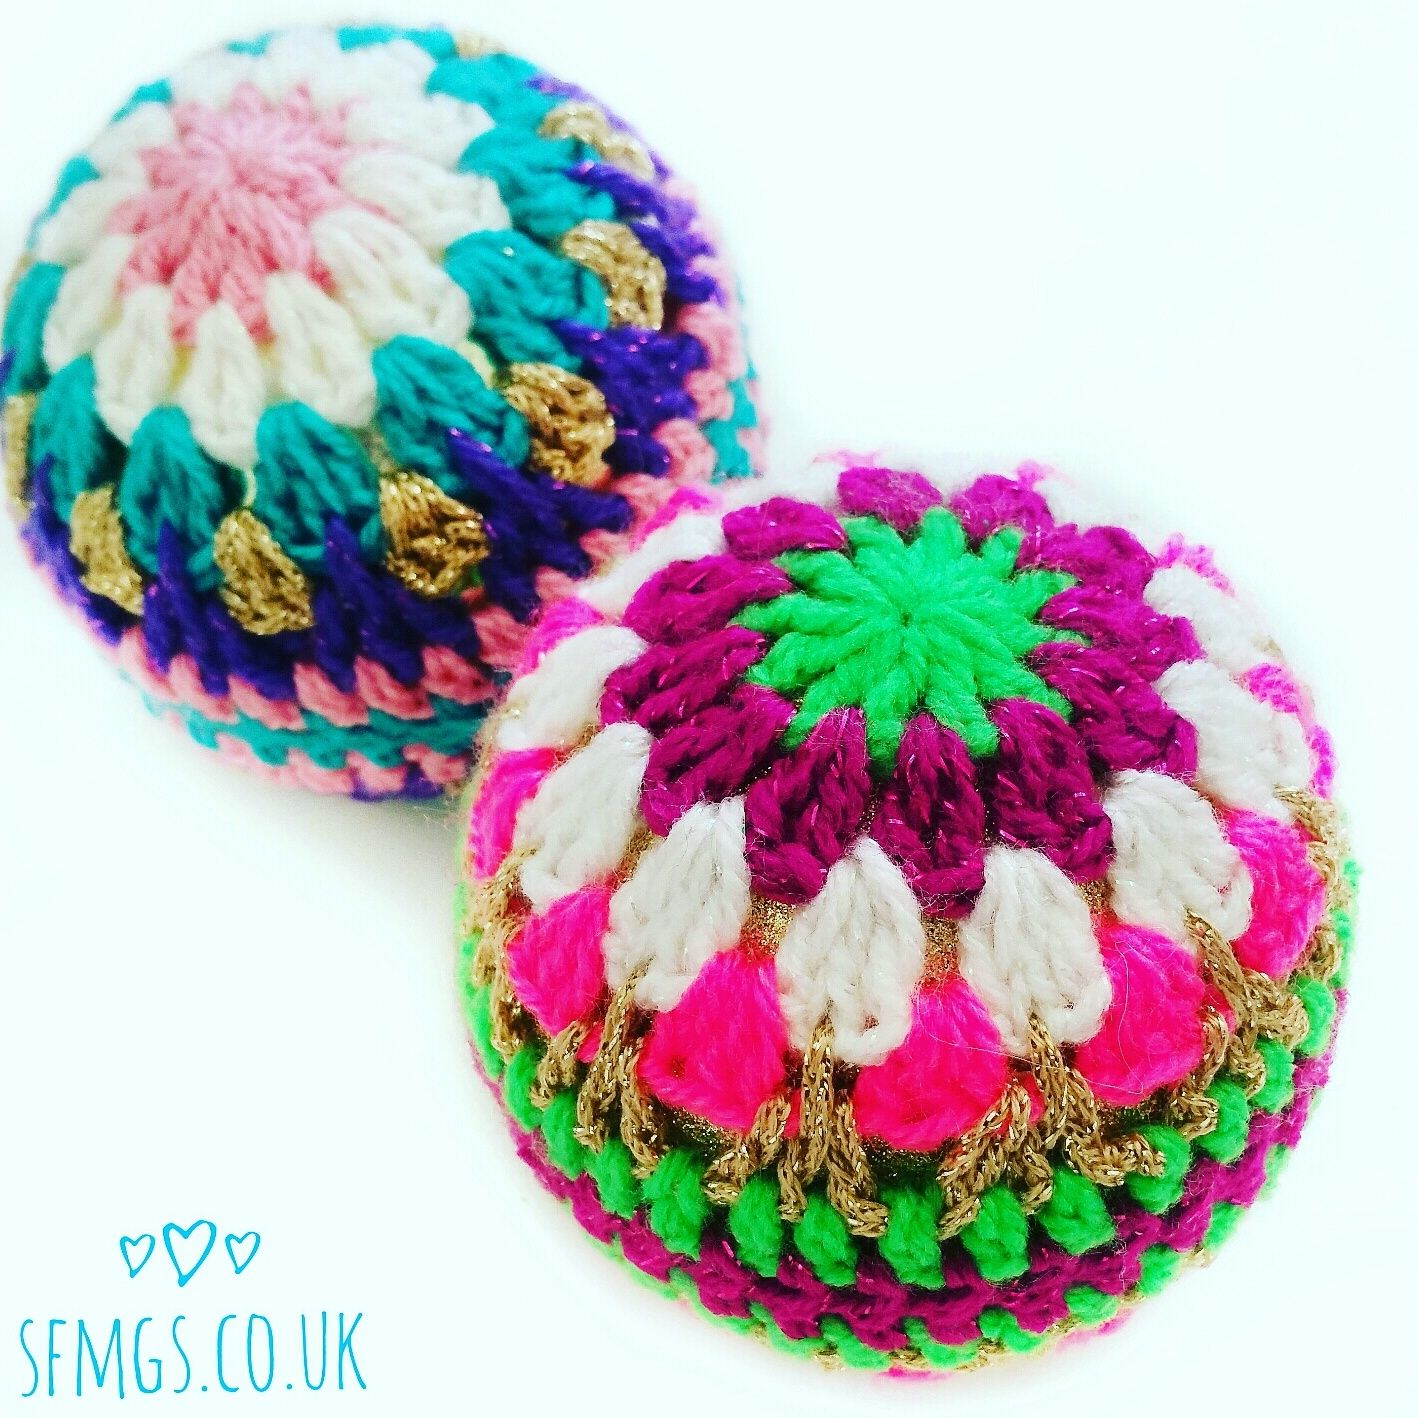 Crochet Christmas Bauble Decorations | Free Crochet Pattern ...